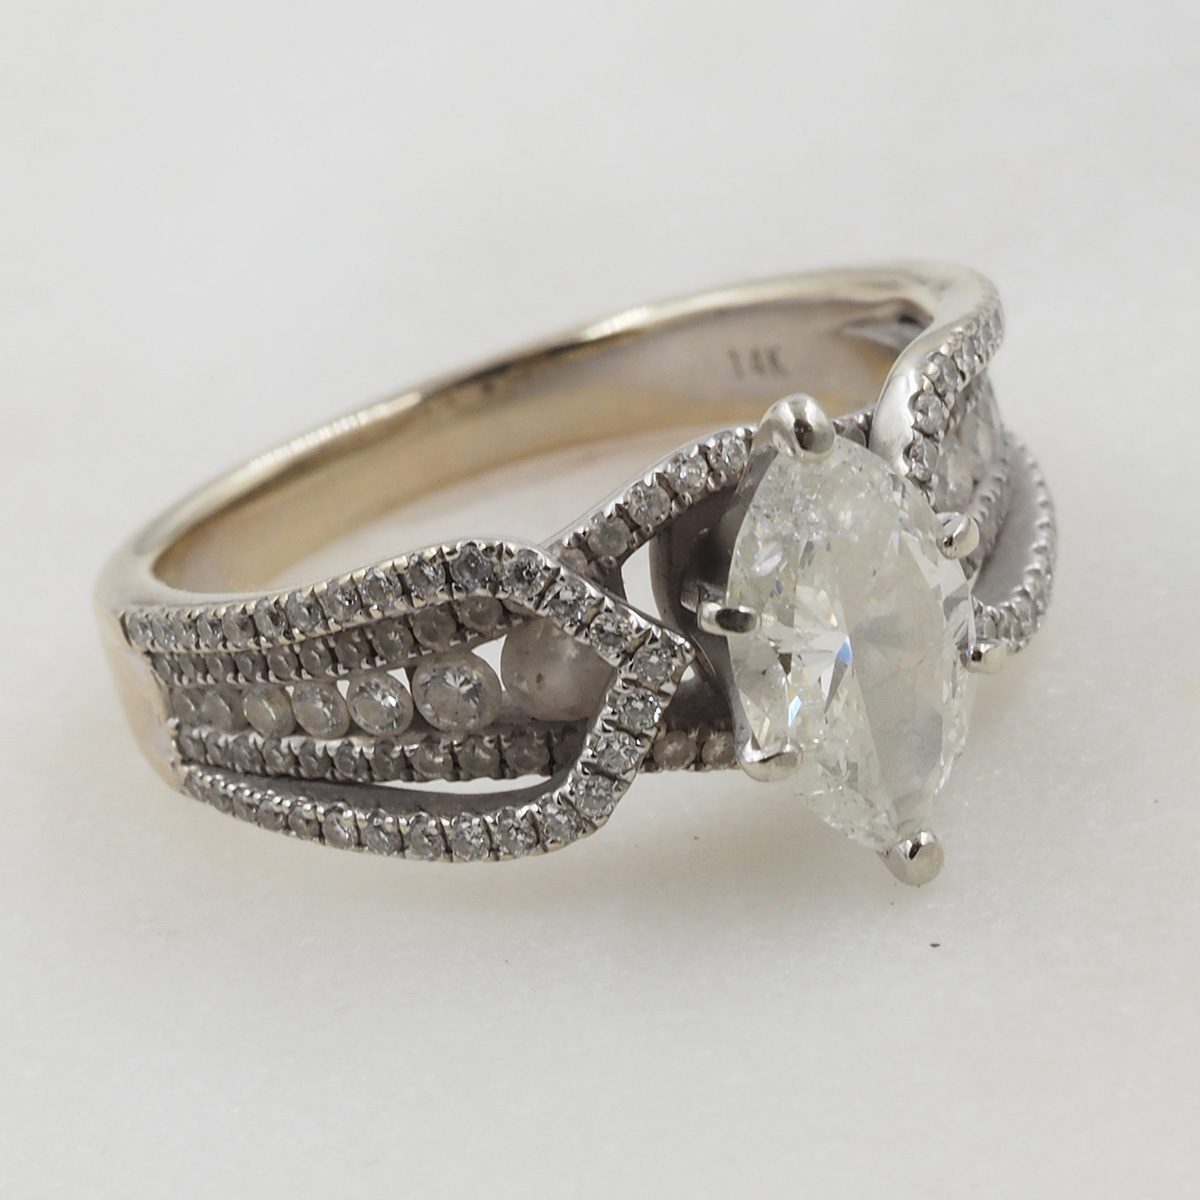 Rhodium wedding ring before cleaning